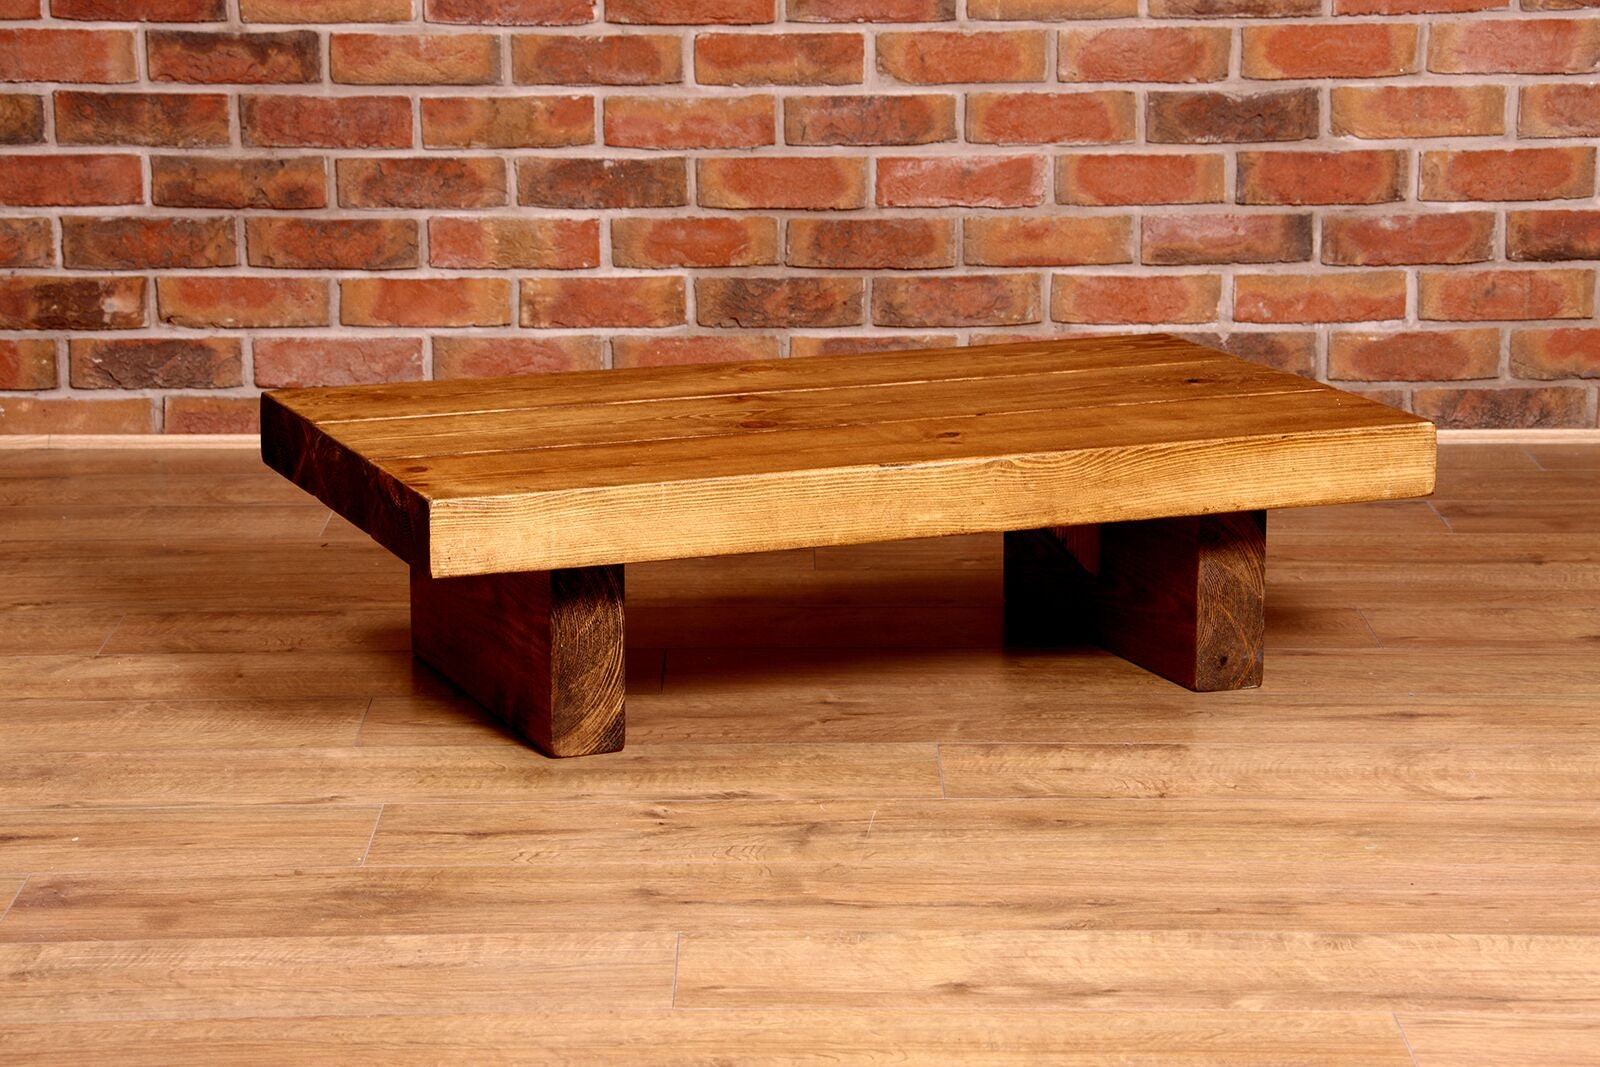 Upcycled Extra Thick Coffee Table, Rustic Chunky,Handmade,Solid Wood,Repurposed